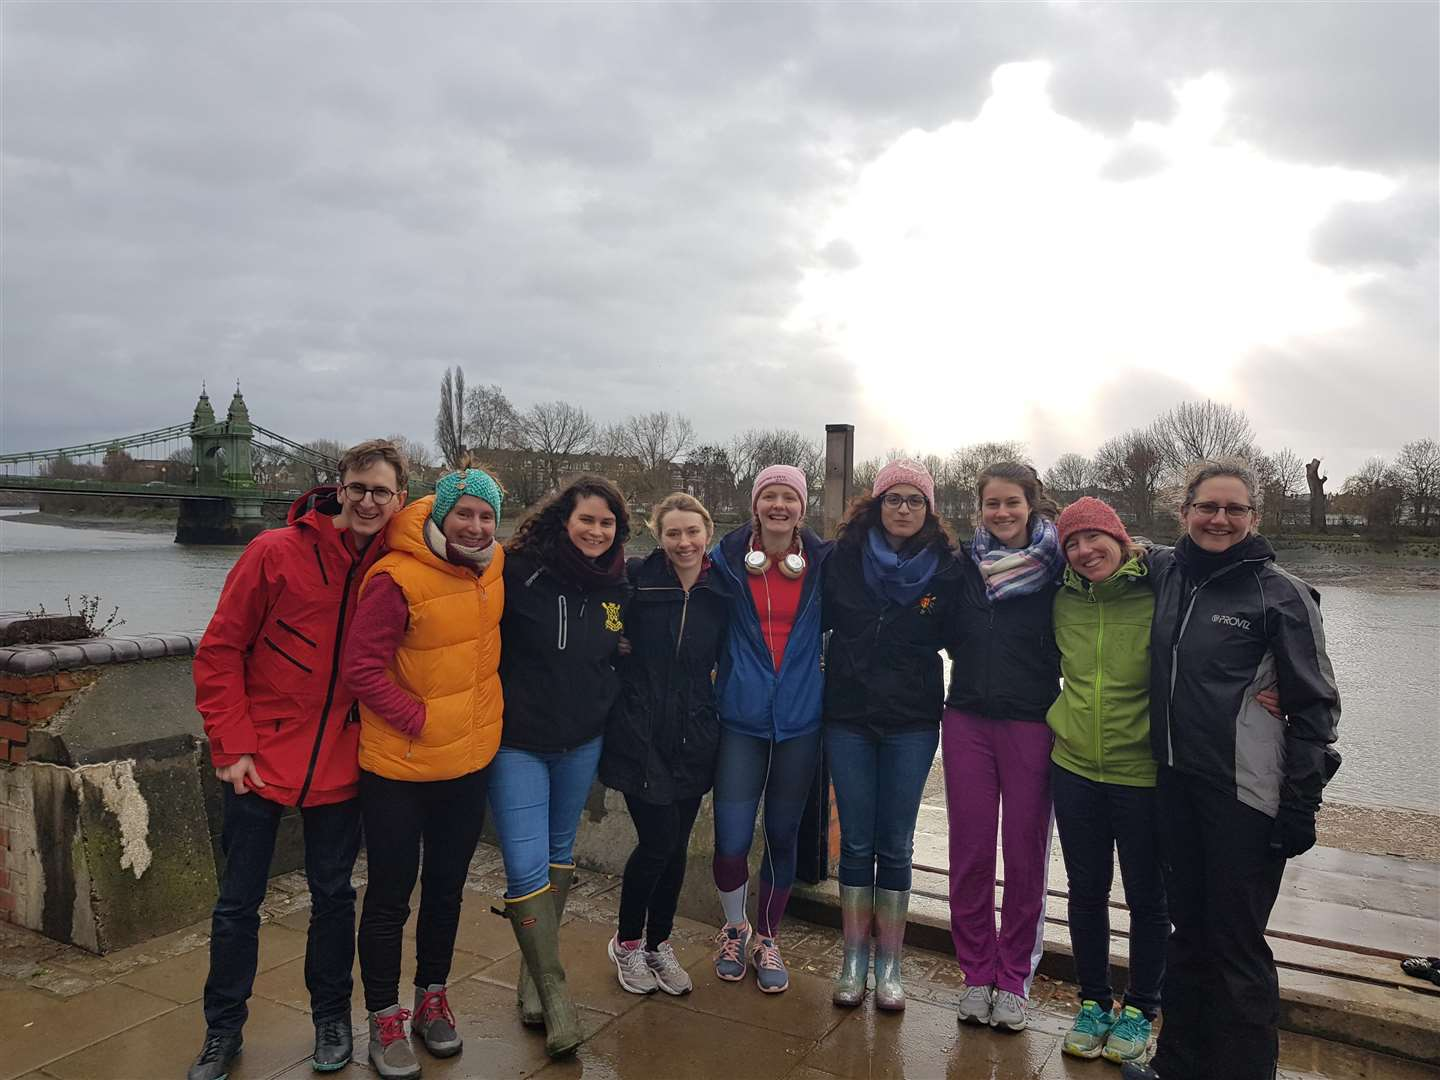 Cambridge 99 women's first crew, from left, Sebb Hathaway, Isabelle Ascah-Coallier, Gemma Douglas, Louise Fairclough, Elena Williams, Chrysa Litina, Anna Willis, Michaela Spitzer and Christina Champion. Picture: Elena Williams (6832185)